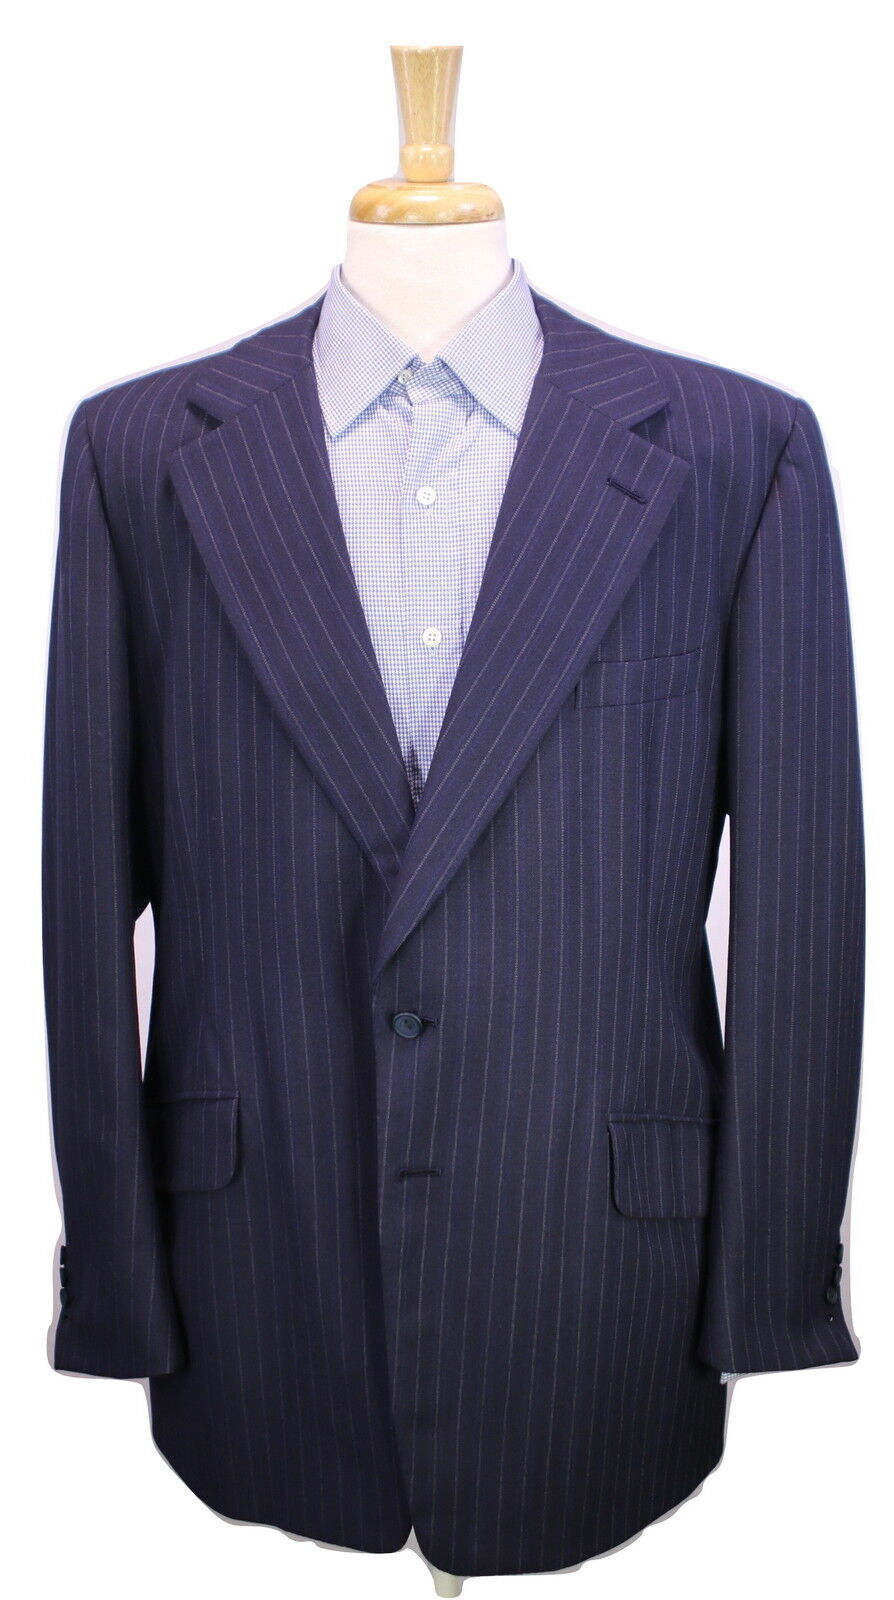 HAWES & CURTIS  Bespoke Handmade Navy bluee Striped 2-Btn Wool Suit Blazer 44L